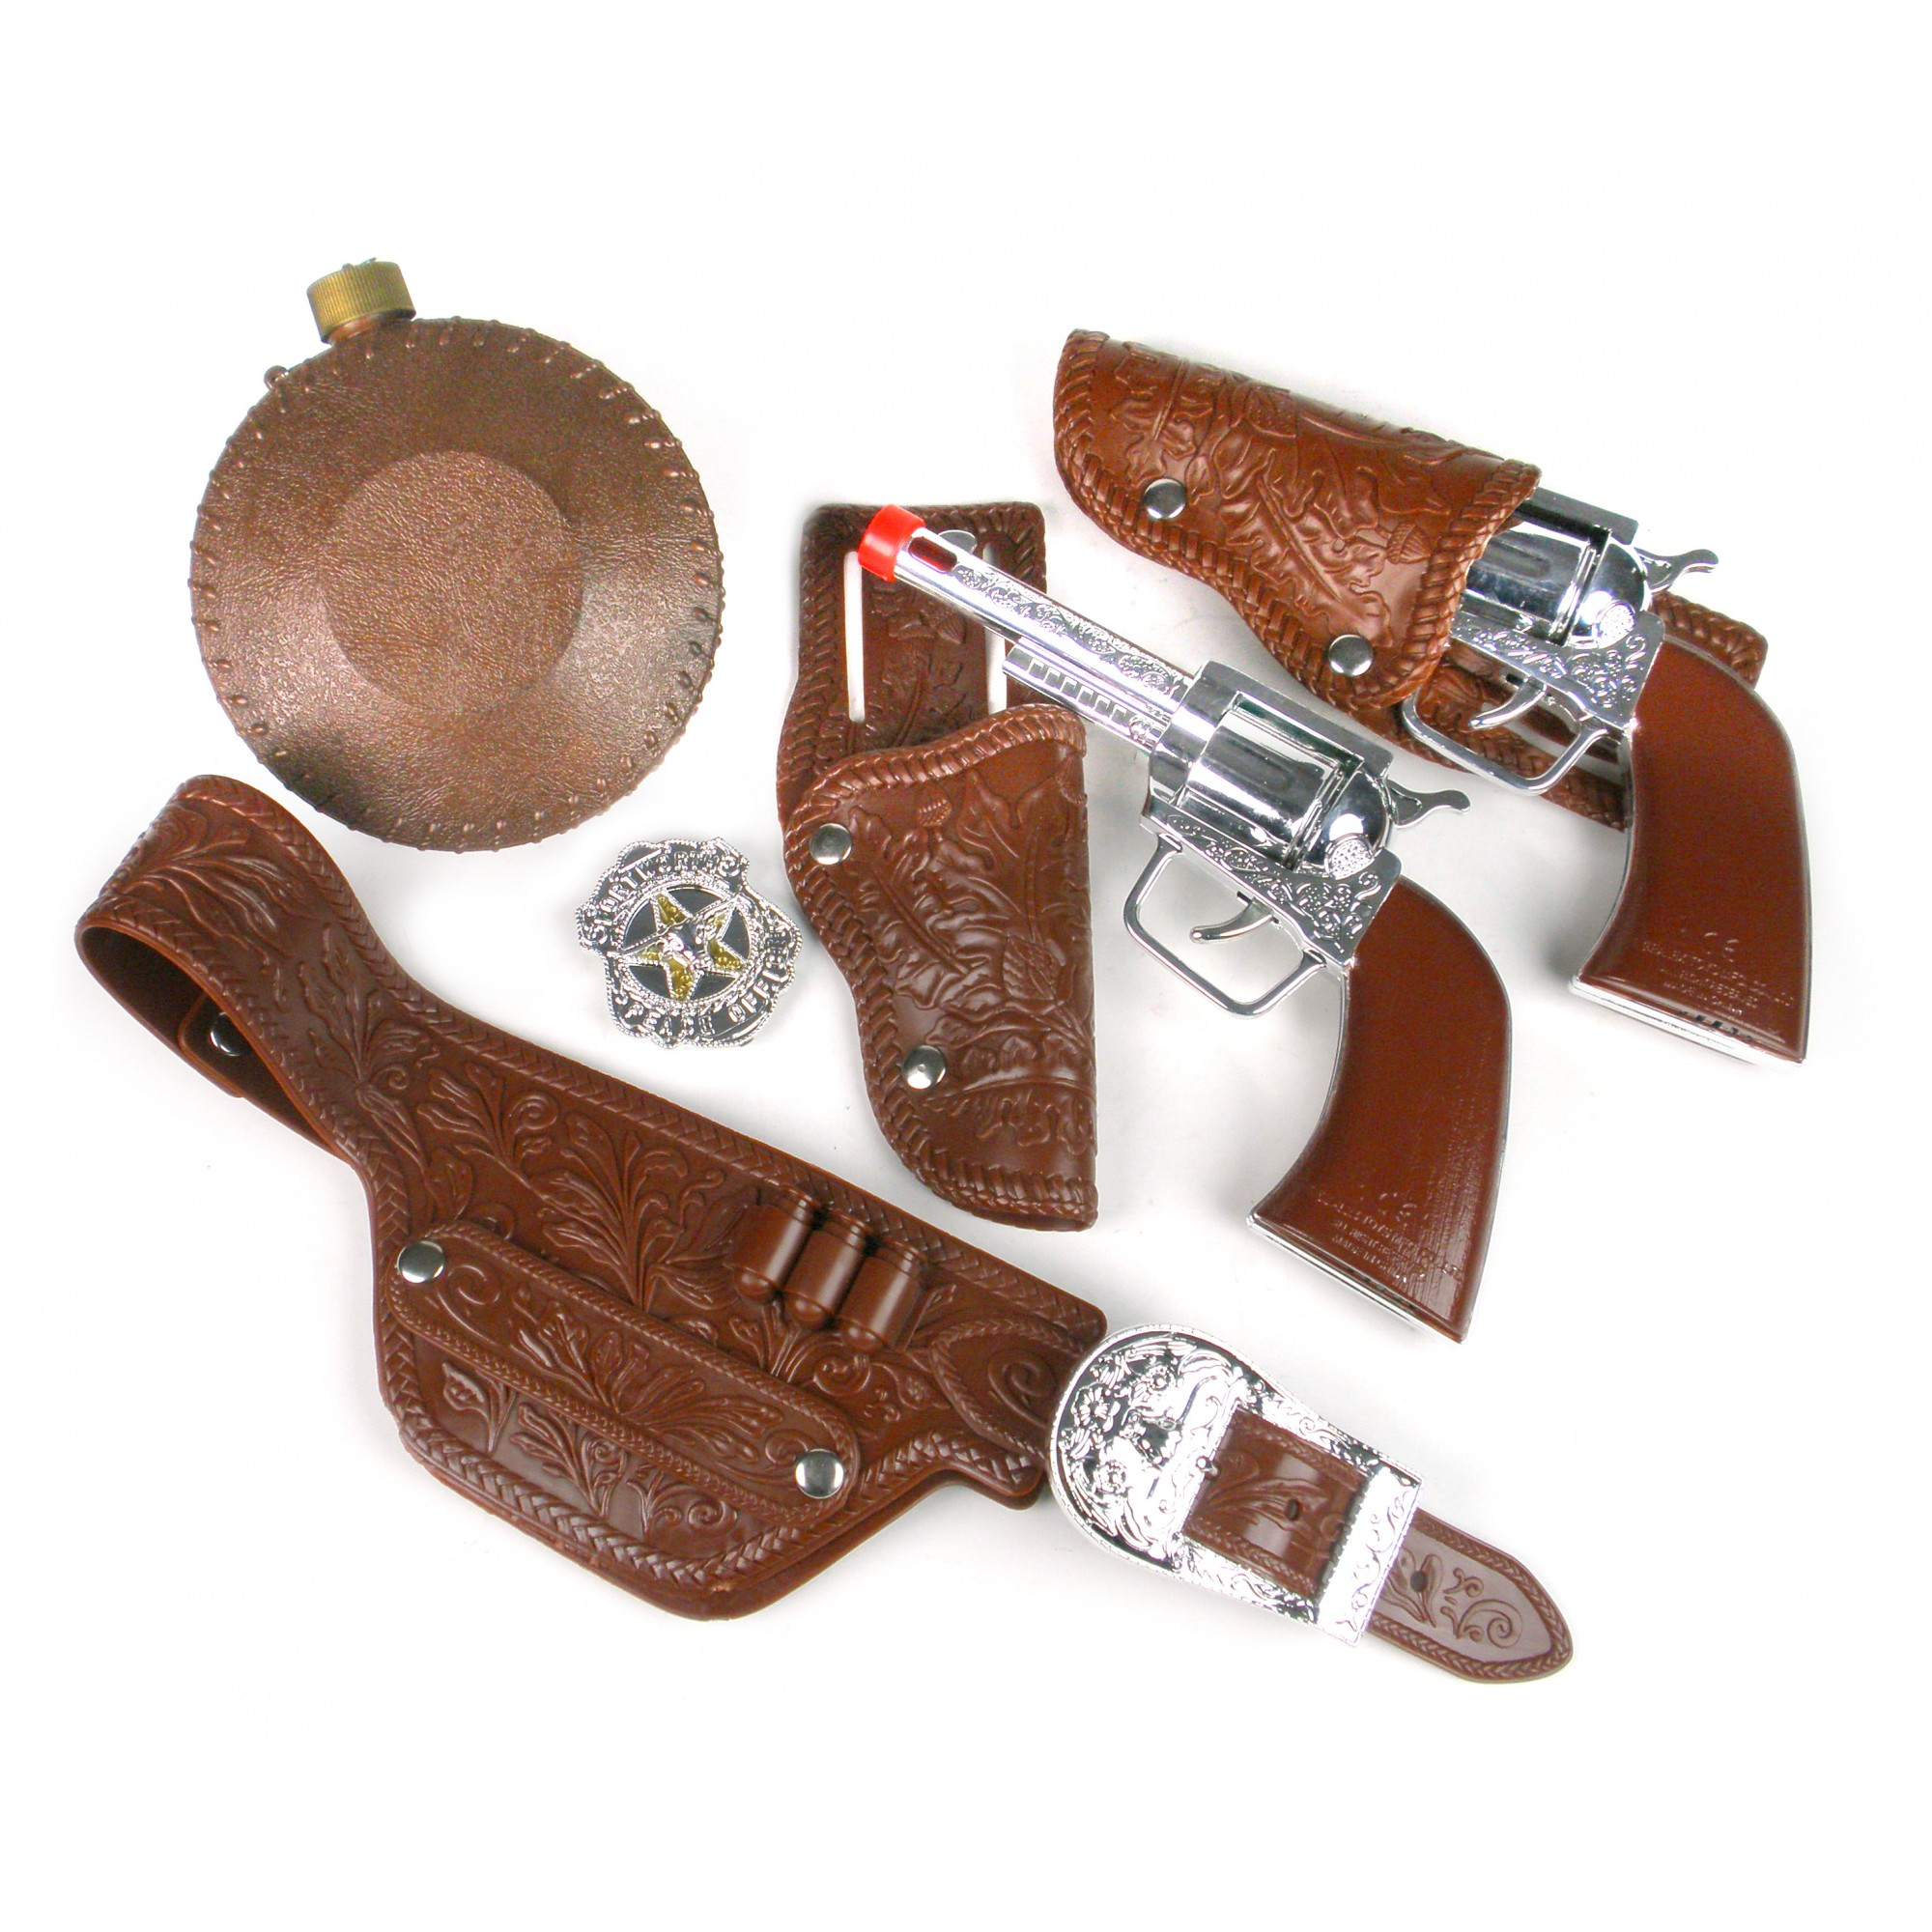 Cow Boy Deluxe Playset W/Revolvers, Canteen, Belt